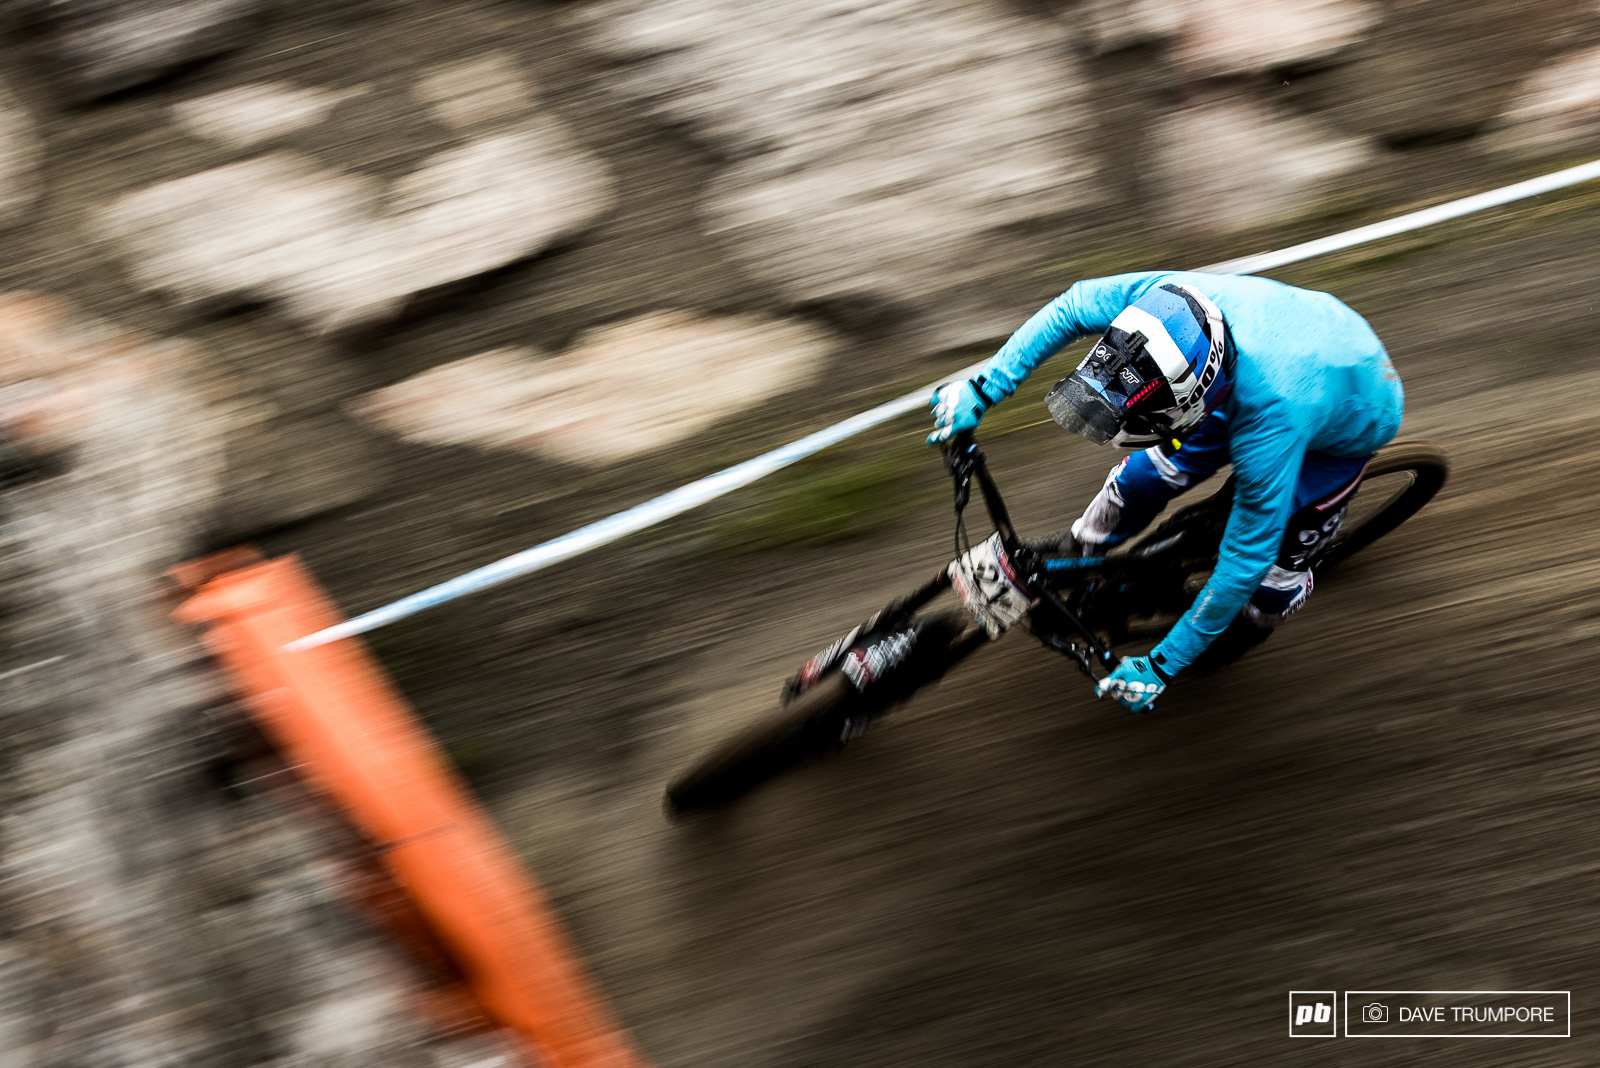 After a promising result last week first year Elite rider Alex Marin struggled in the mud of Leogang today.